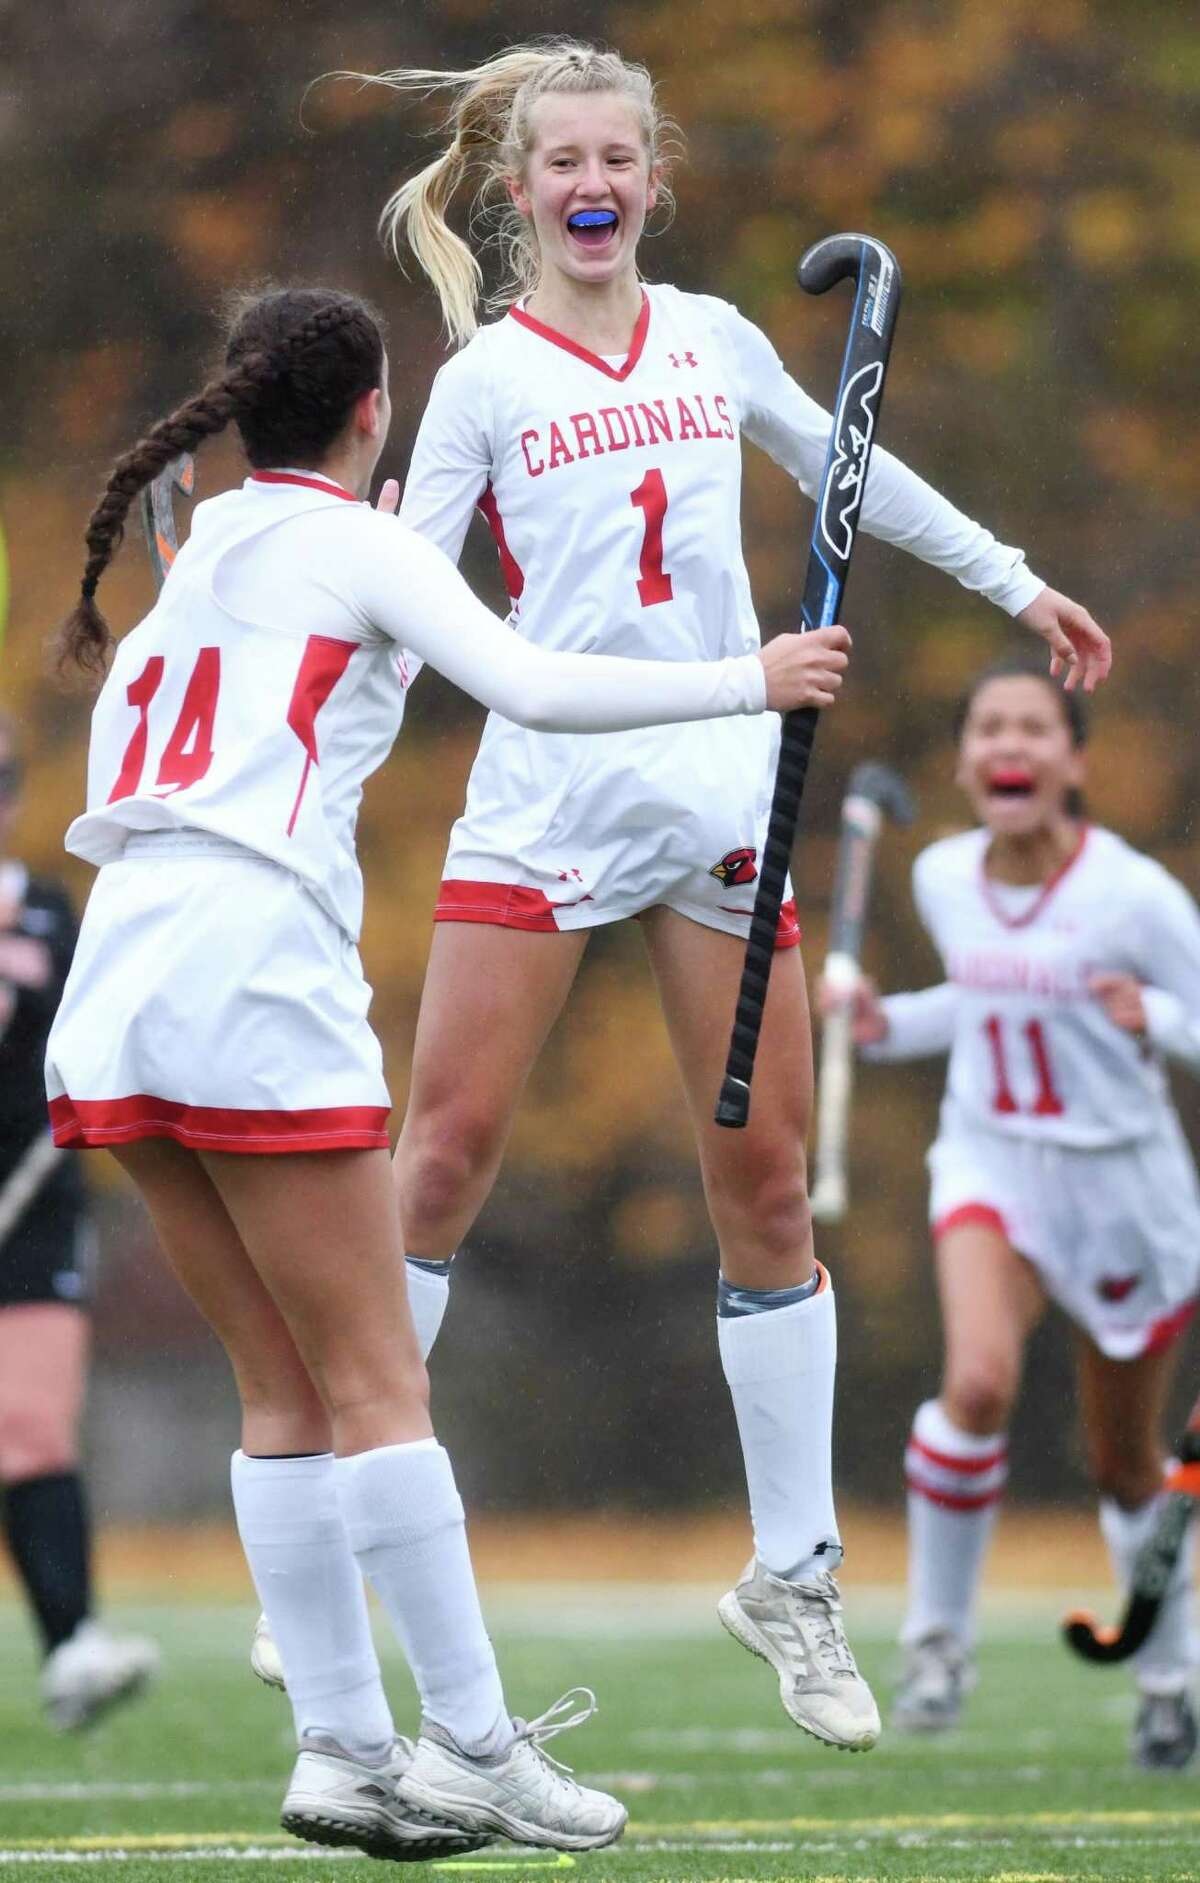 Greenwich's Zita Cohen (1) celebrates after scoring the first goal in Greenwich's 6-0 win over Stamford in the FCIAC West championship game at Greenwich High School in Greenwich, Conn. Thursday, Nov. 12, 2020.